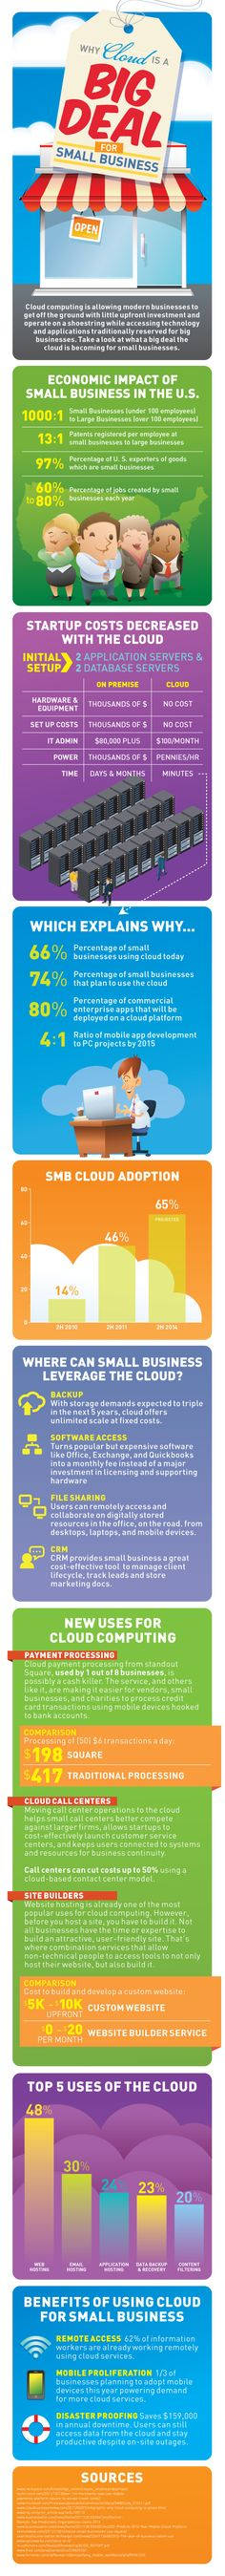 Why Cloud Is A Big Deal For Small Businesses